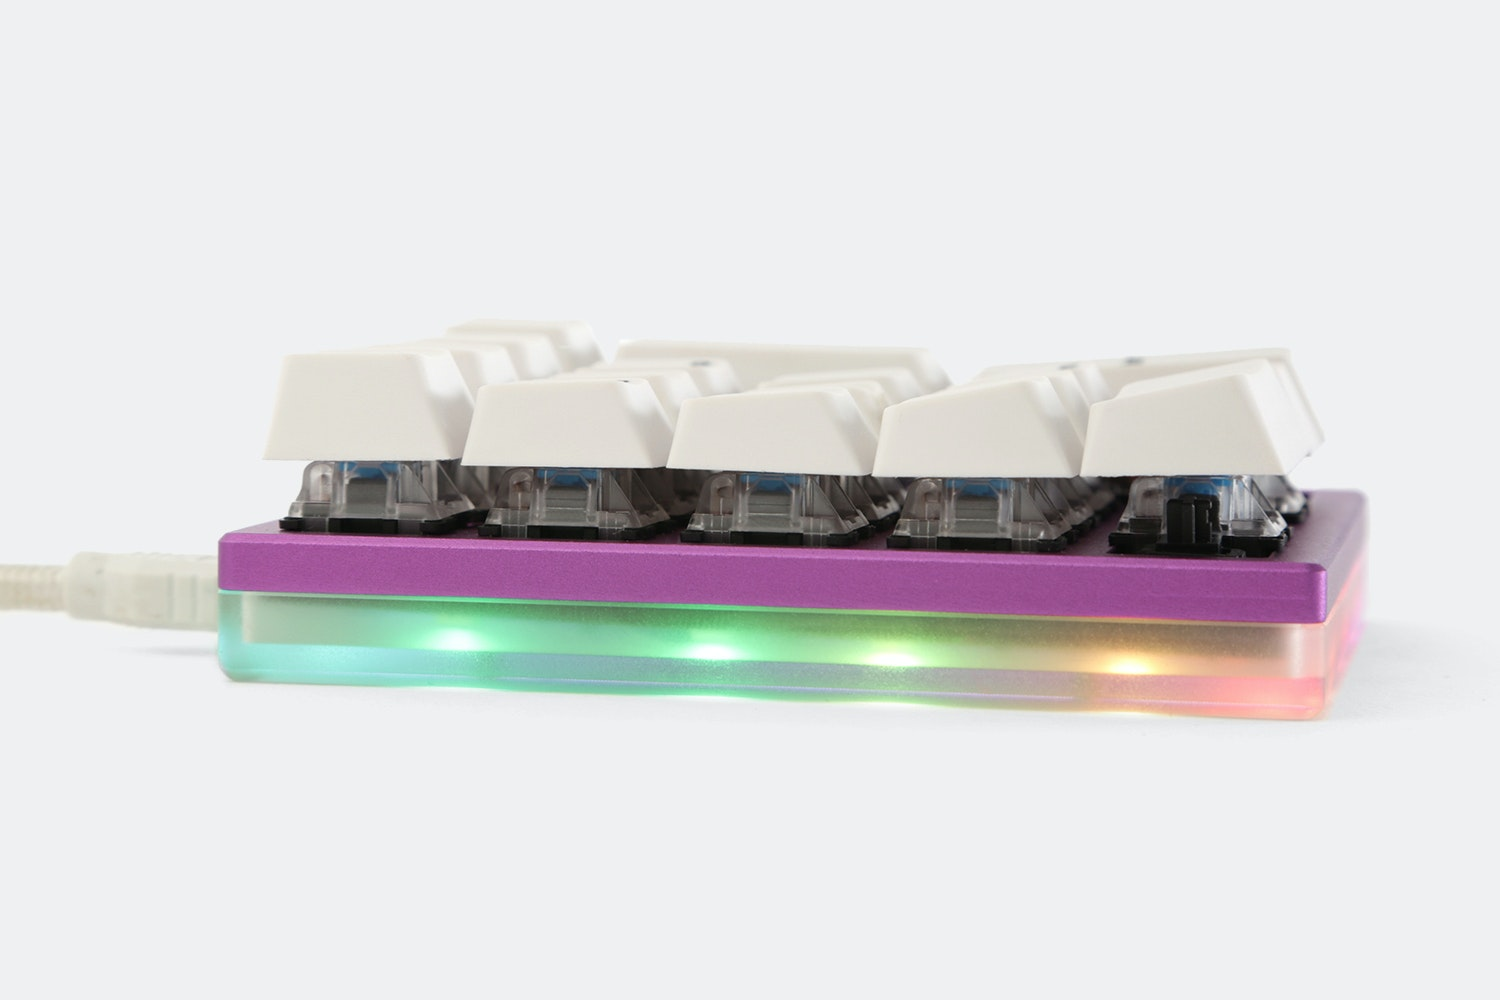 Sentraq Custom DIY RGB Number Pad Kit